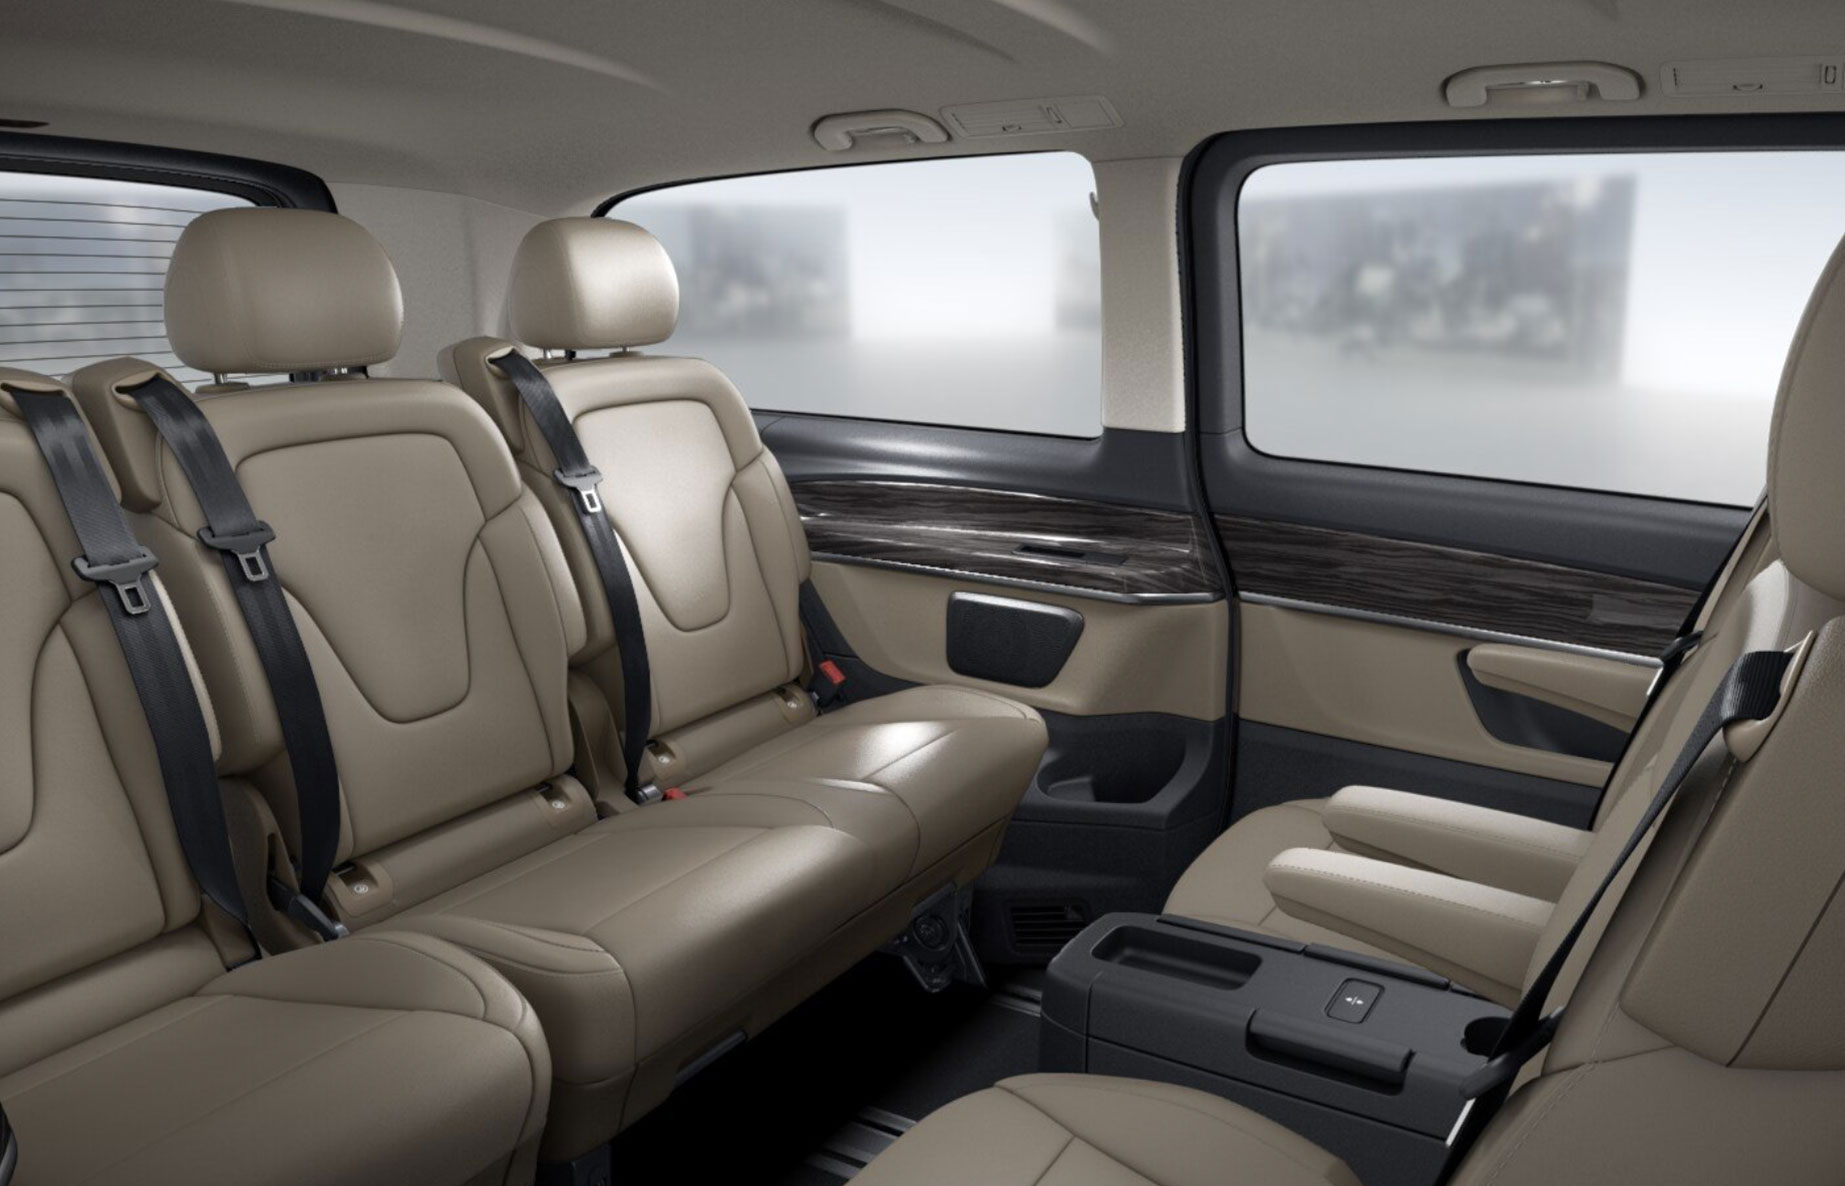 Luxury Chauffeur Car Service Milan - V Class Interior